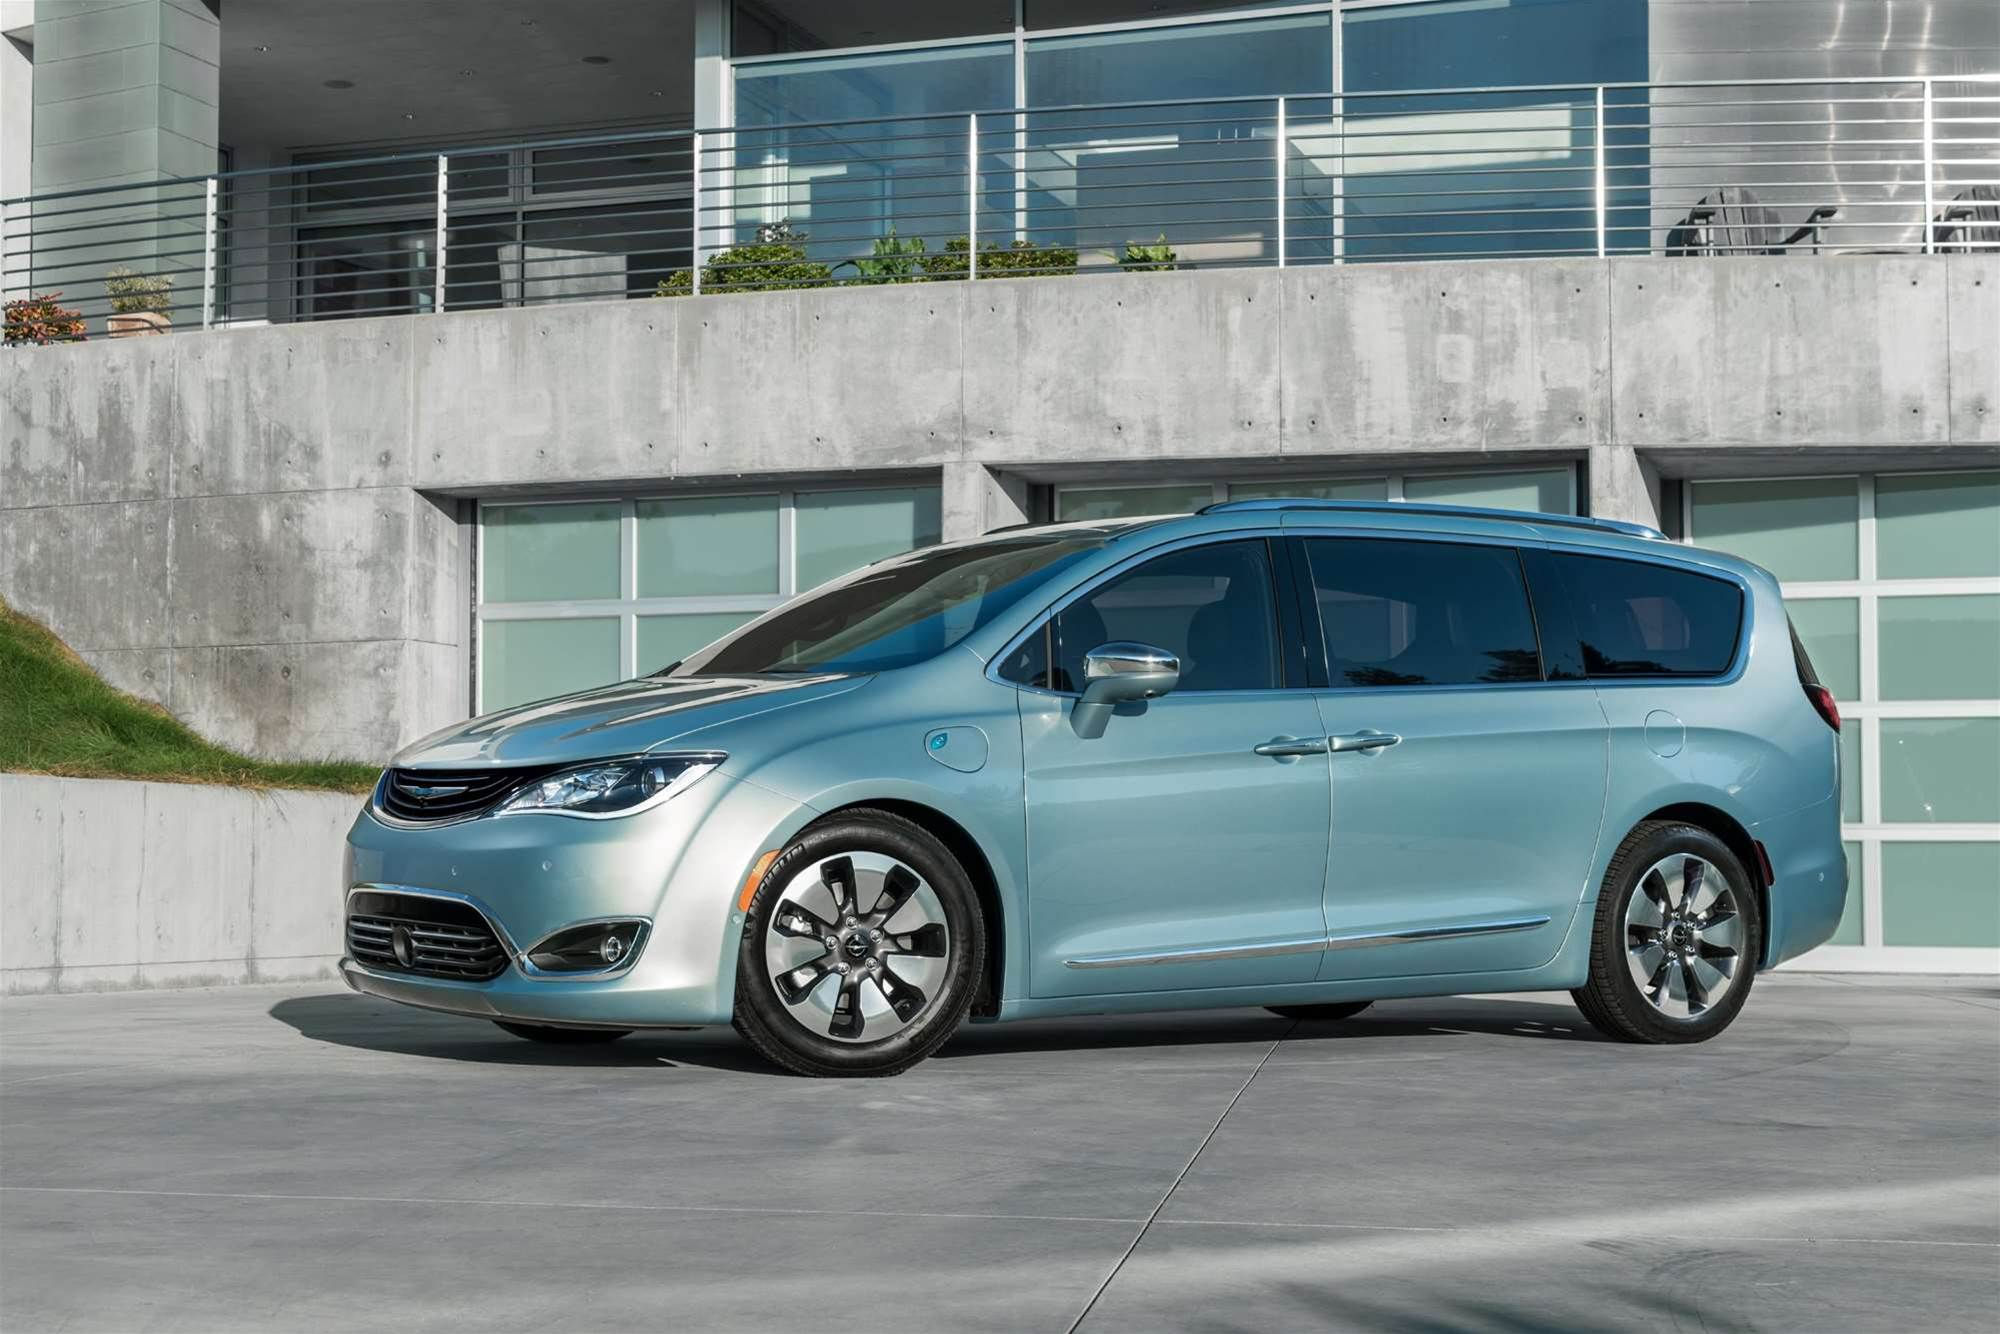 Google, Fiat to make 100 self-driving minivans